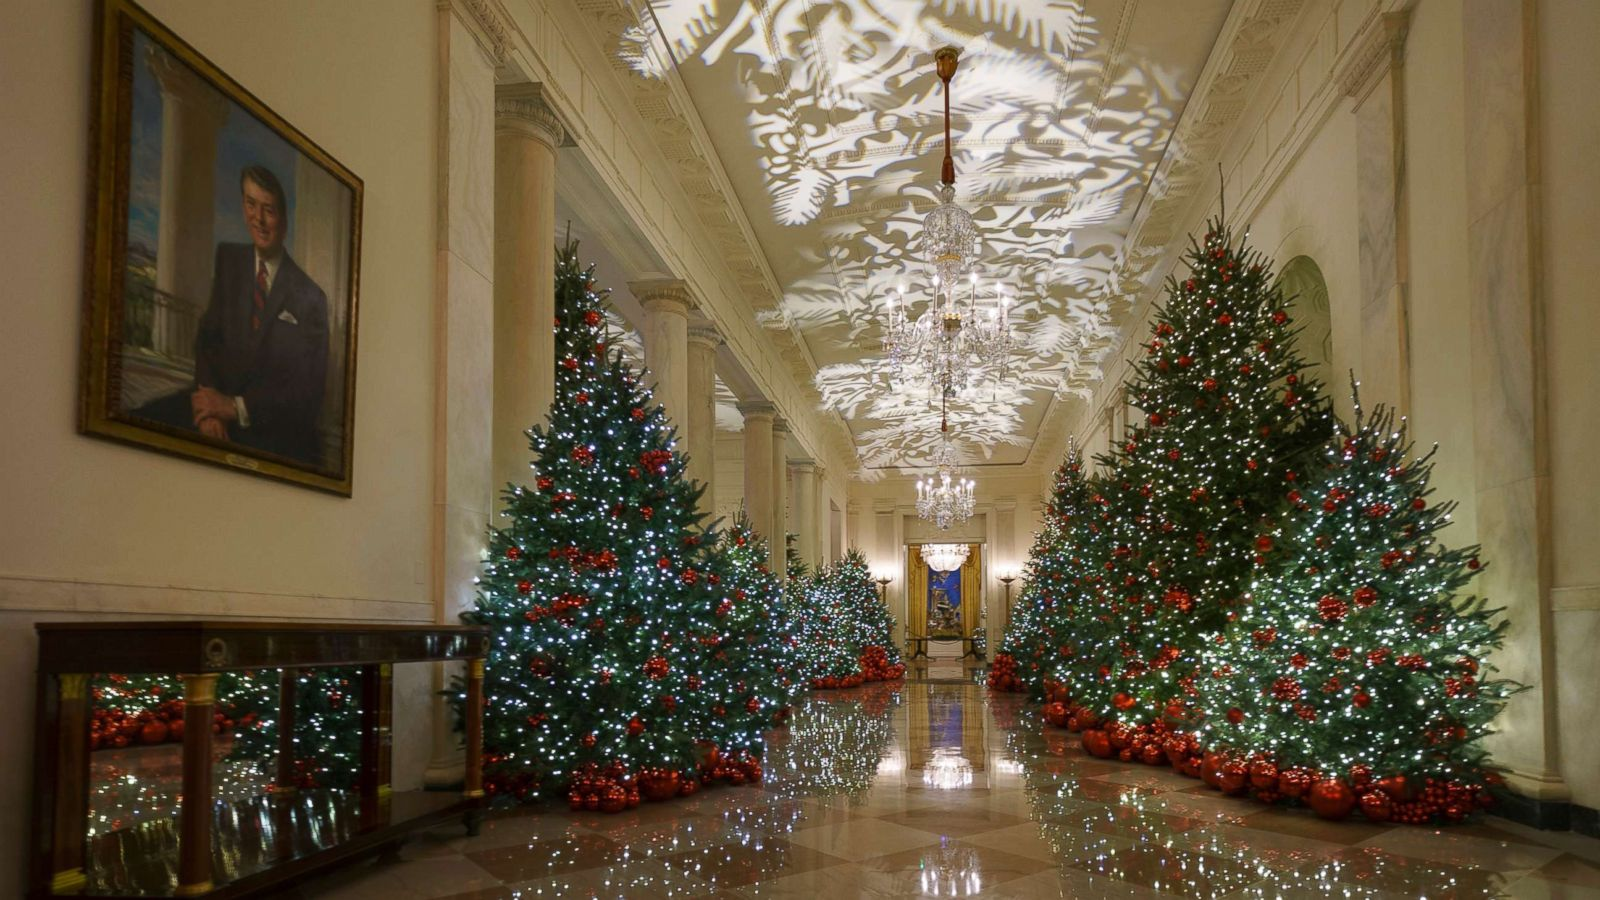 White House Christmas Decorations 2021 Meme First Lady Melania Trump Unveils 2018 White House Christmas Decorations Abc News